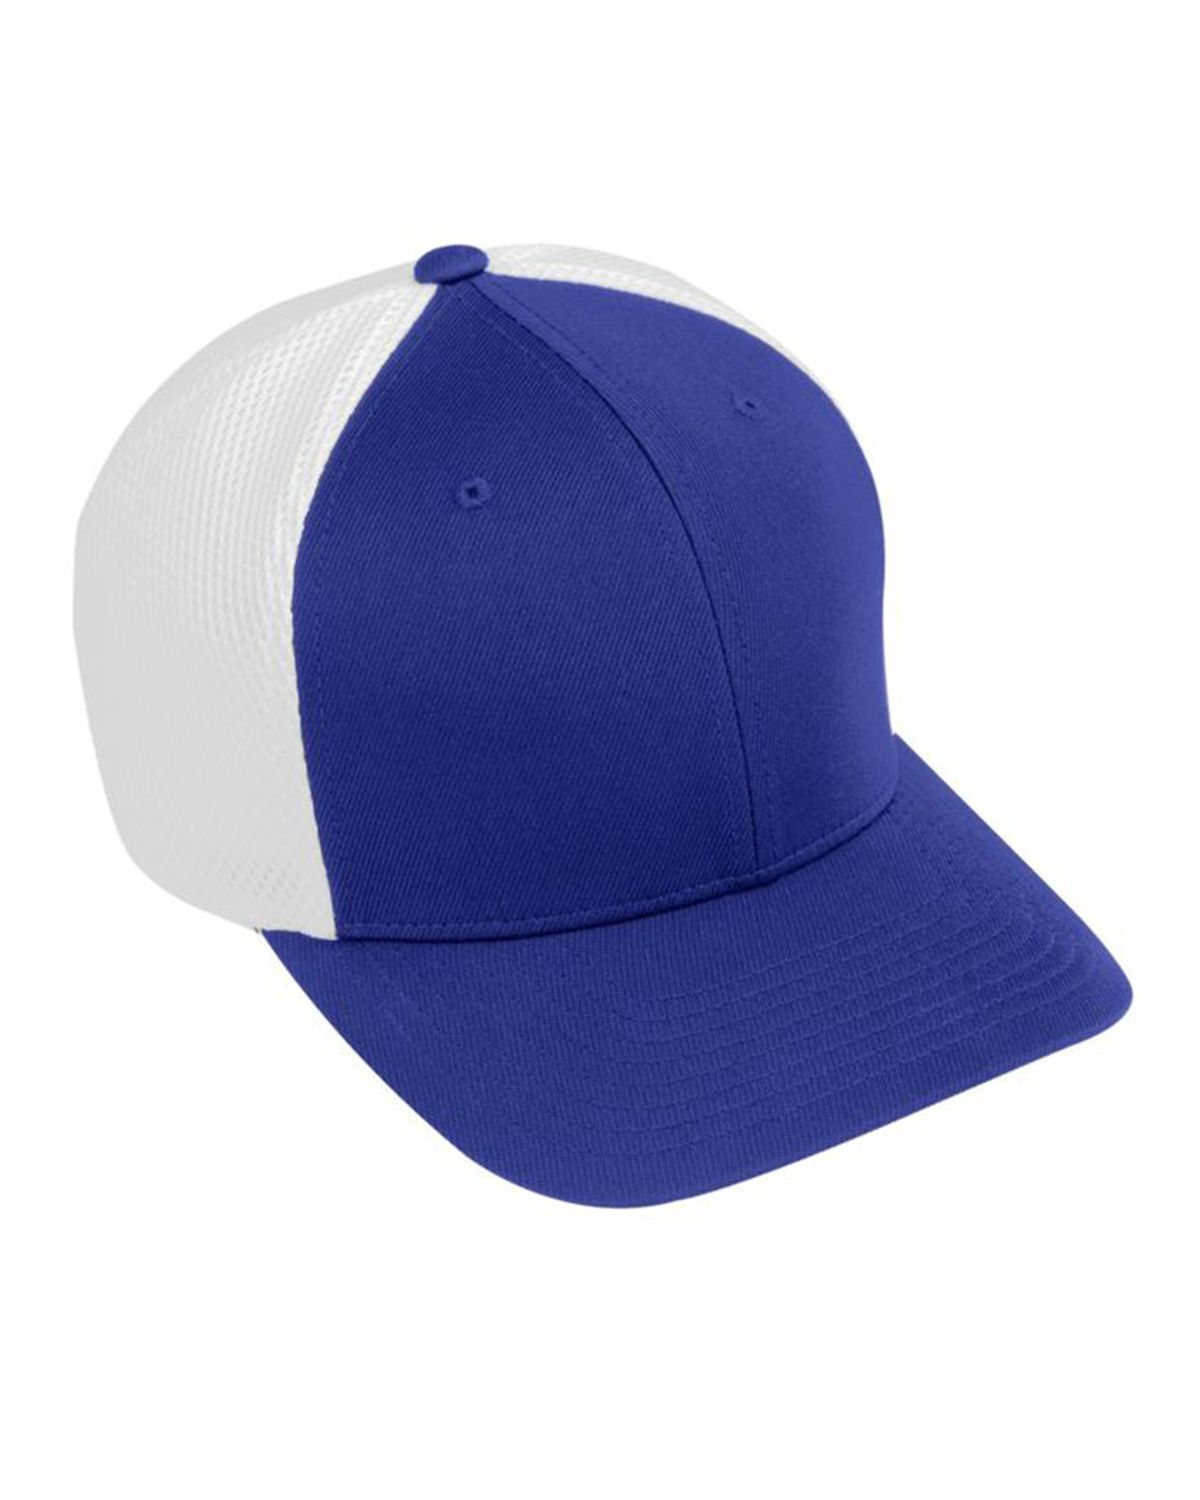 Augusta Sportswear AG6301 Youth Flex Fit Vapor Cap - Purple/ White - One Size #vapor